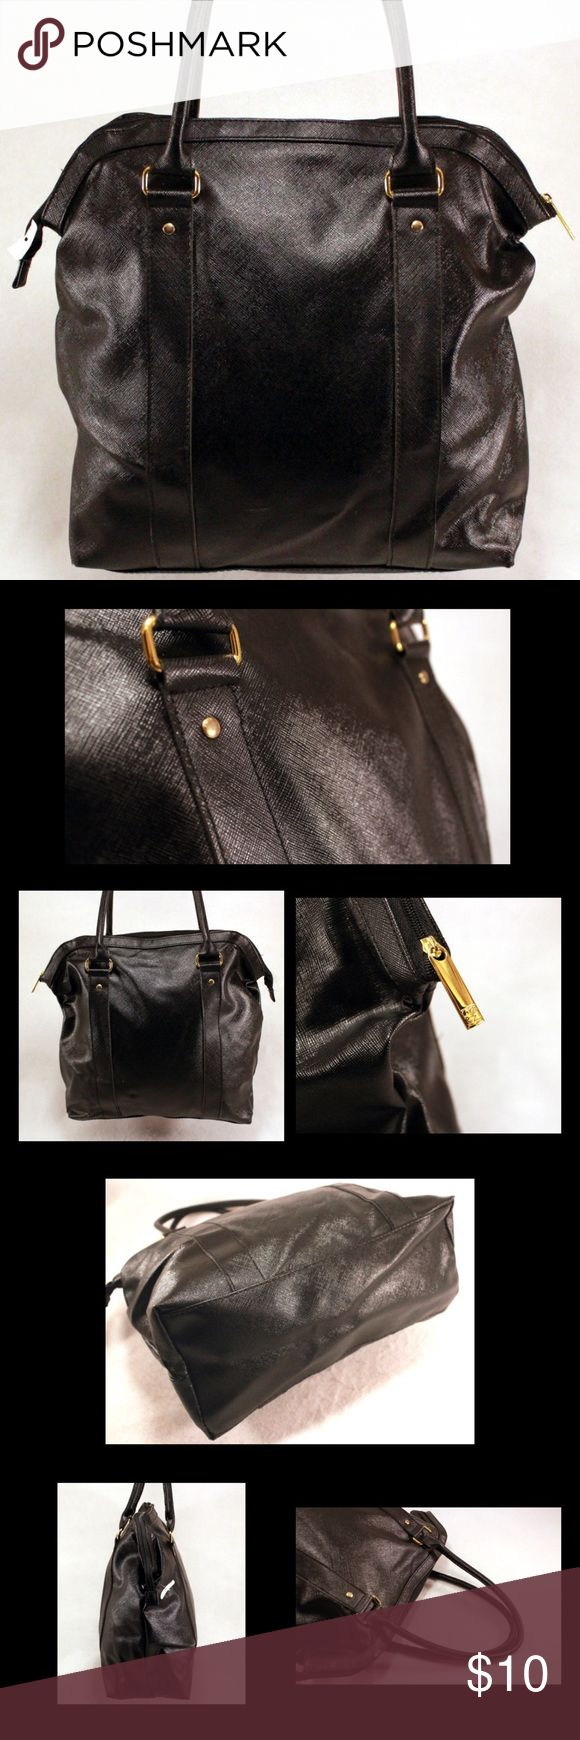 """ESTEE LAUDER Black Saffiano Style Bag ESTEE LAUDER Black Saffiano Style Bag with Gold Tone Hardware and Zipper Pull.  Manmade materials.  15.75x13.5x5.5"""" with 6"""" strap drop.  Minimal wear consistent with prior usage.  Nice looking bag! Estimated Value $35. Estee Lauder Bags"""